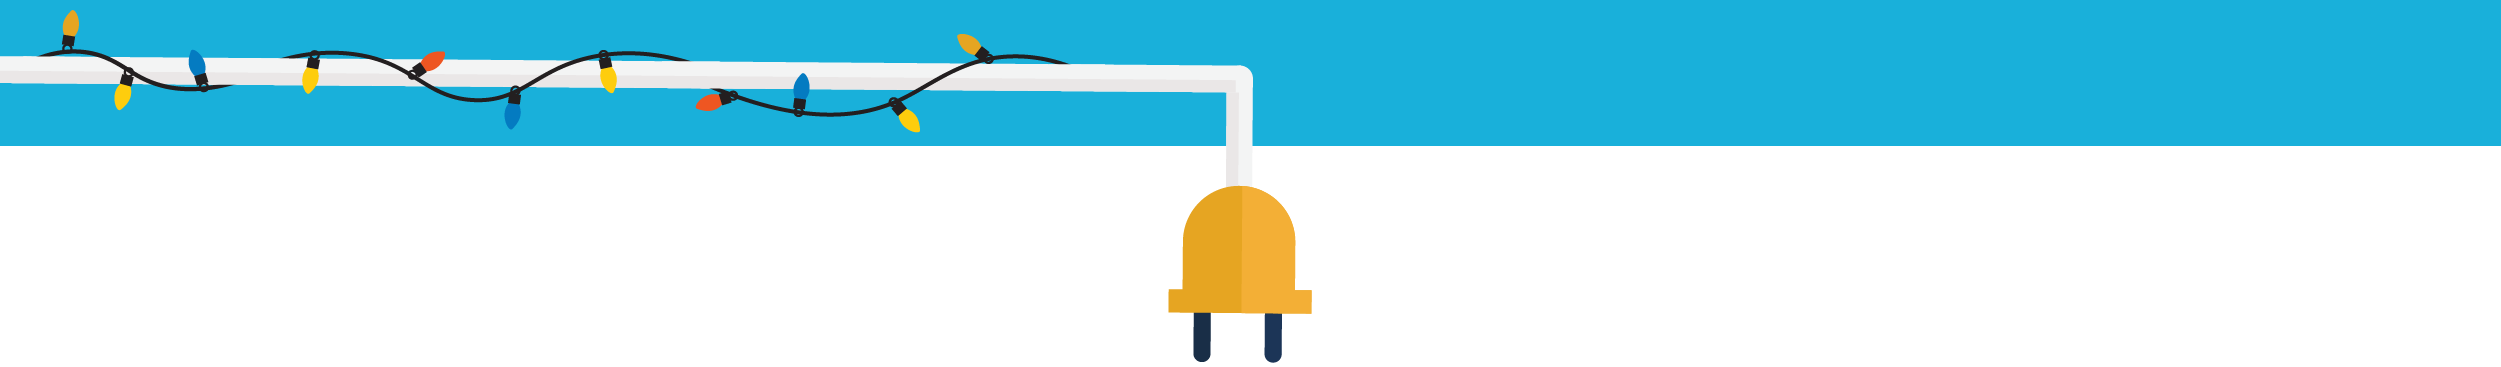 Illustration of a plug with lights hanging around it.